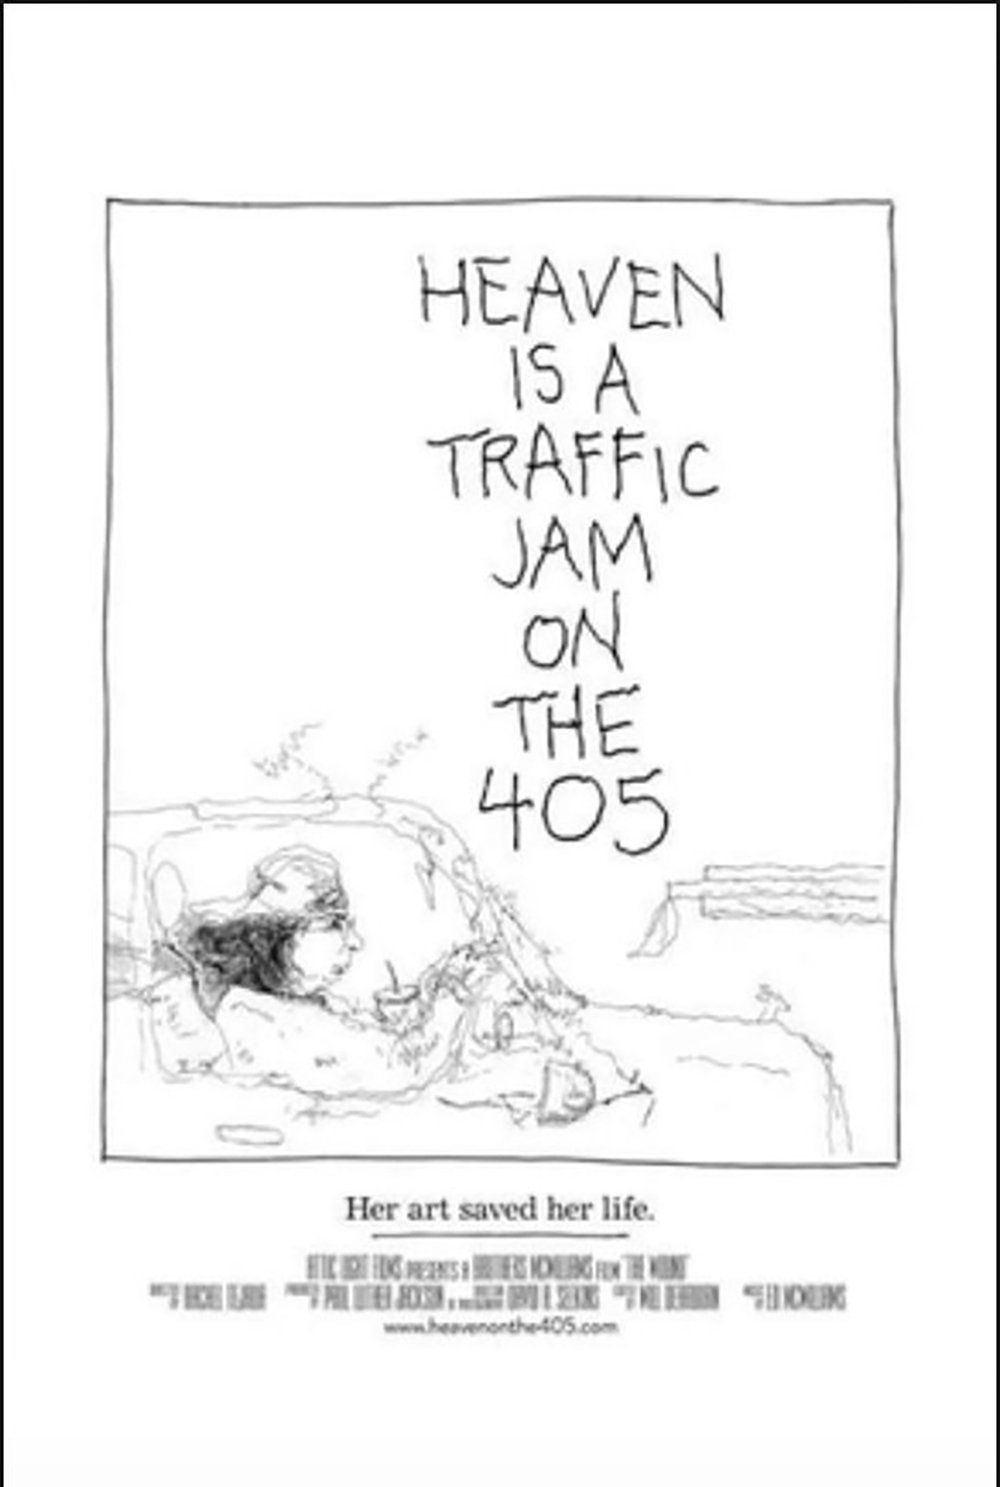 天堂堵塞 Heaven is a Traffic Jam on the 405 1